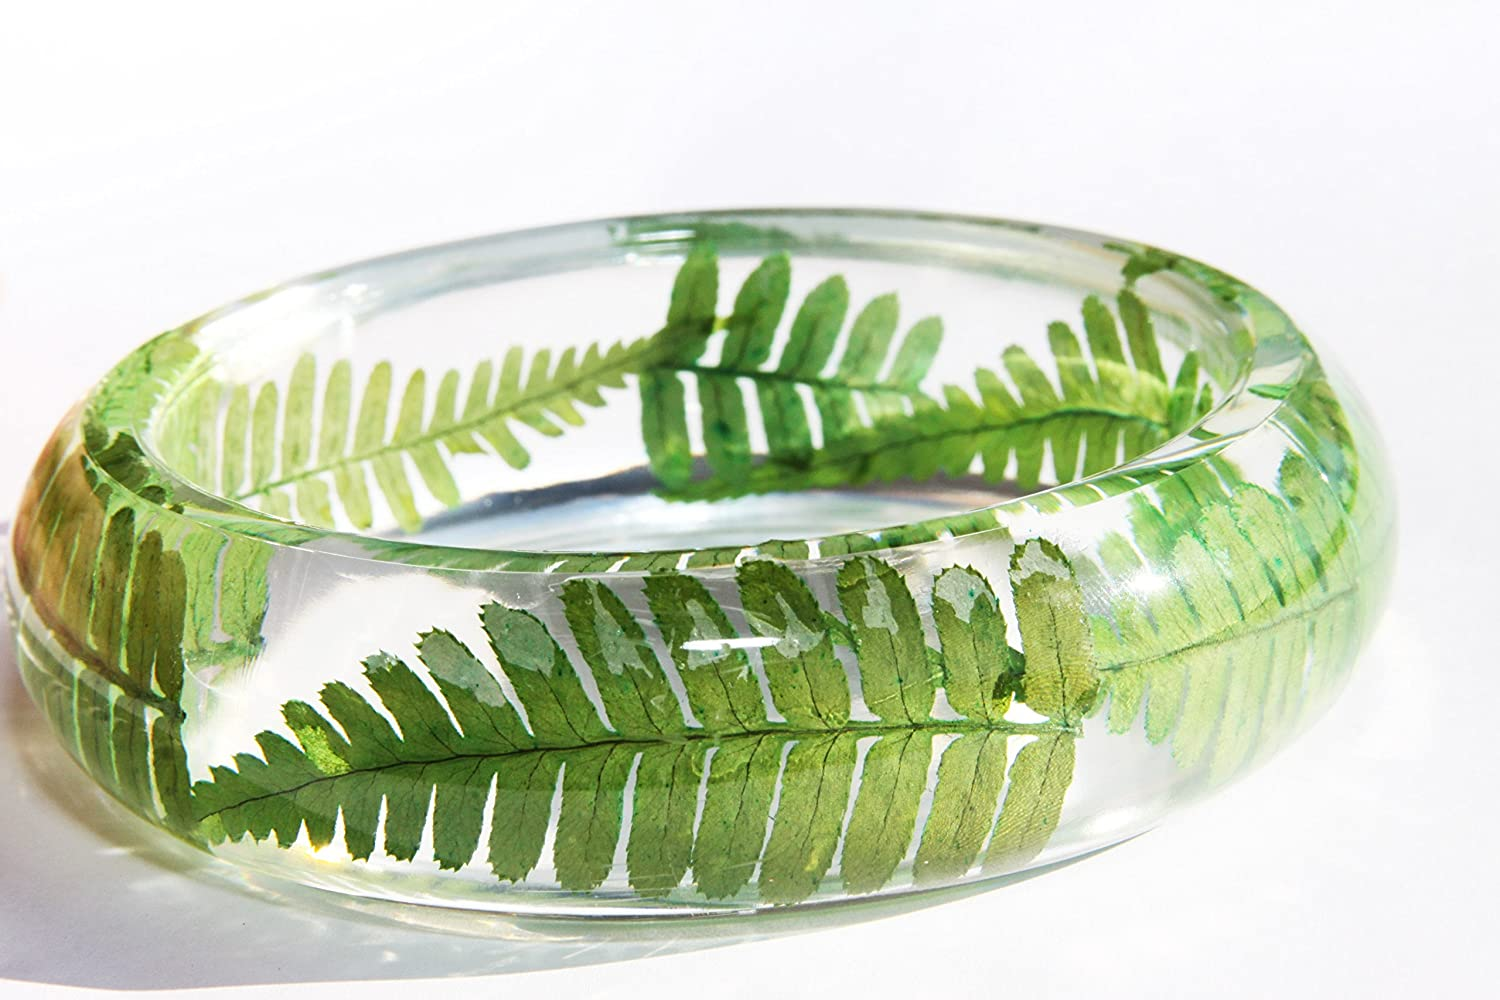 New Fifties Dresses | 50s Inspired Dresses Handmade Real dried leaf Botanical Garden Resin Bangle Bracelet.{G-12}Size 68mmheight 23mm. Free USA shipping. $23.55 AT vintagedancer.com